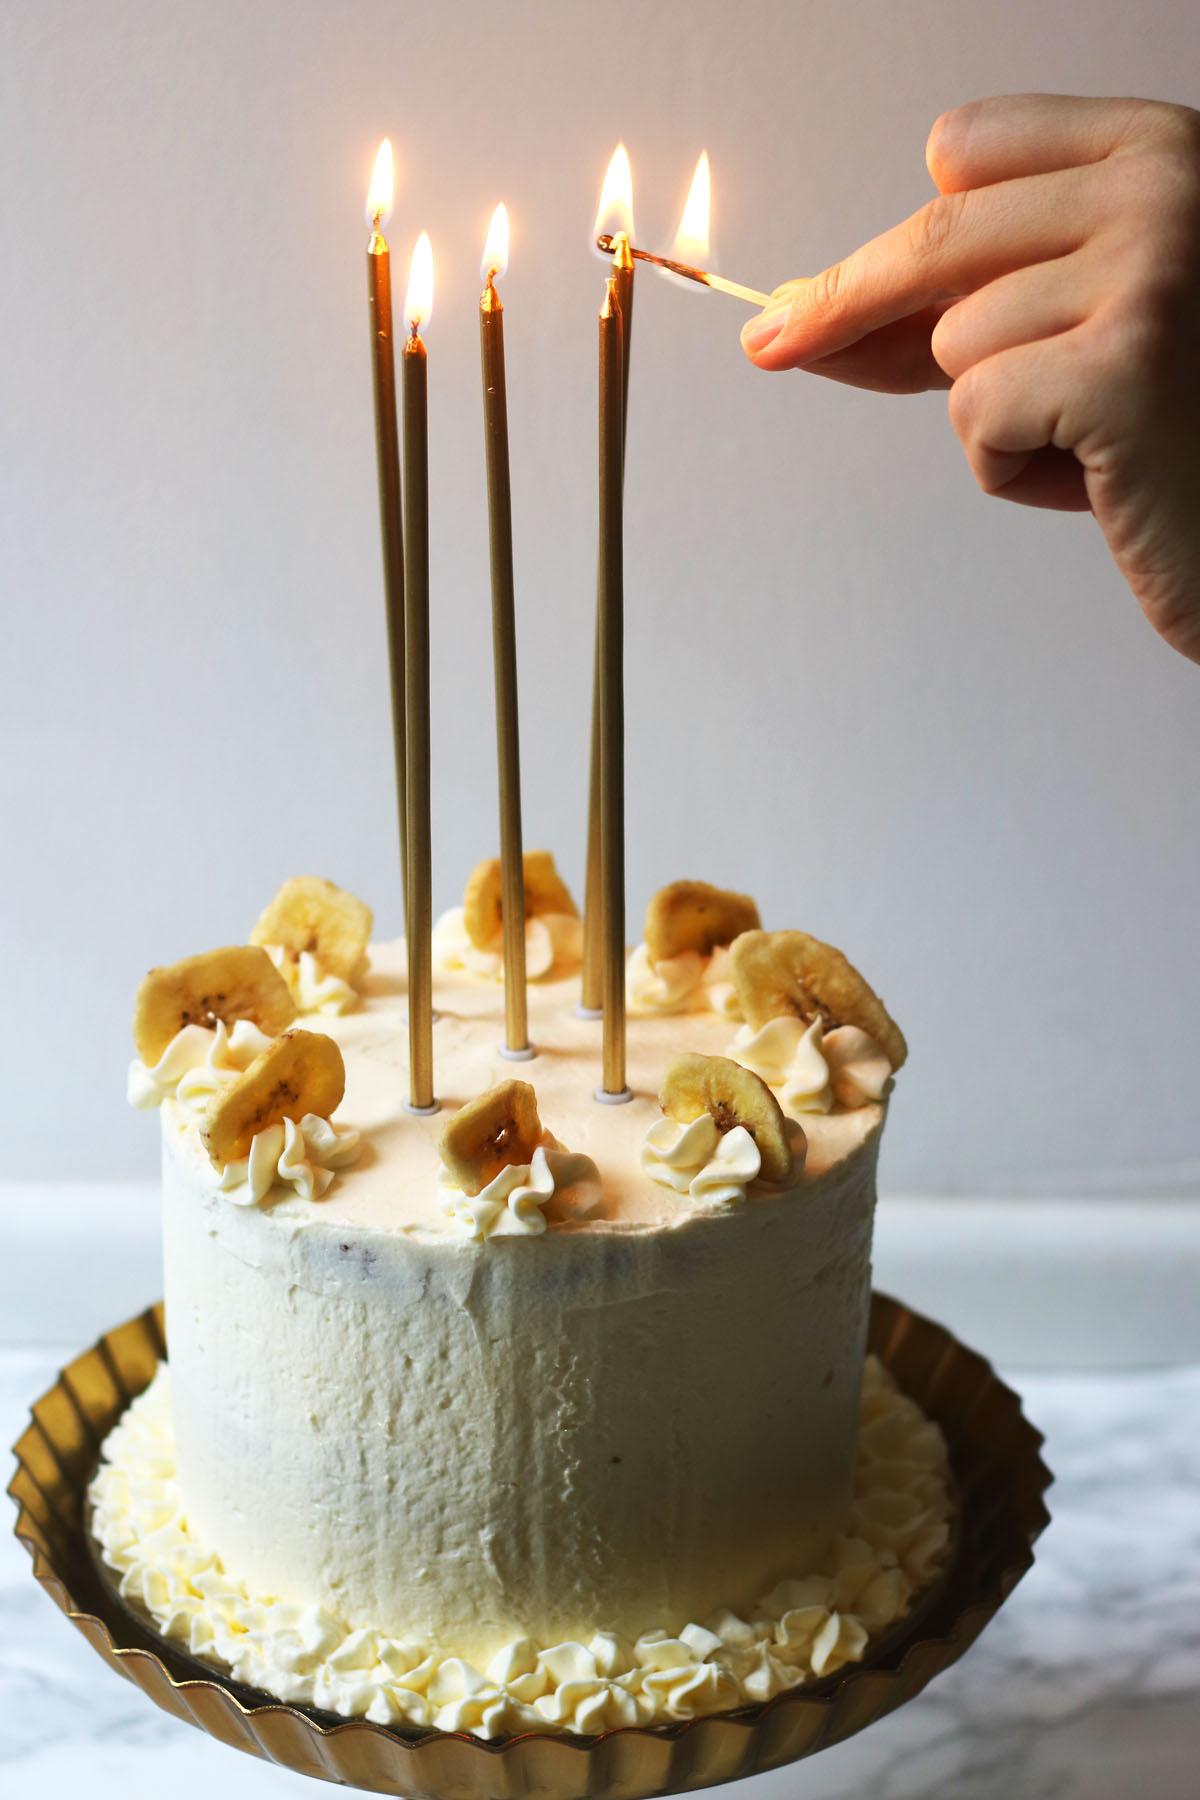 Lighting the candles on my Banana Cream Cake for my birthday